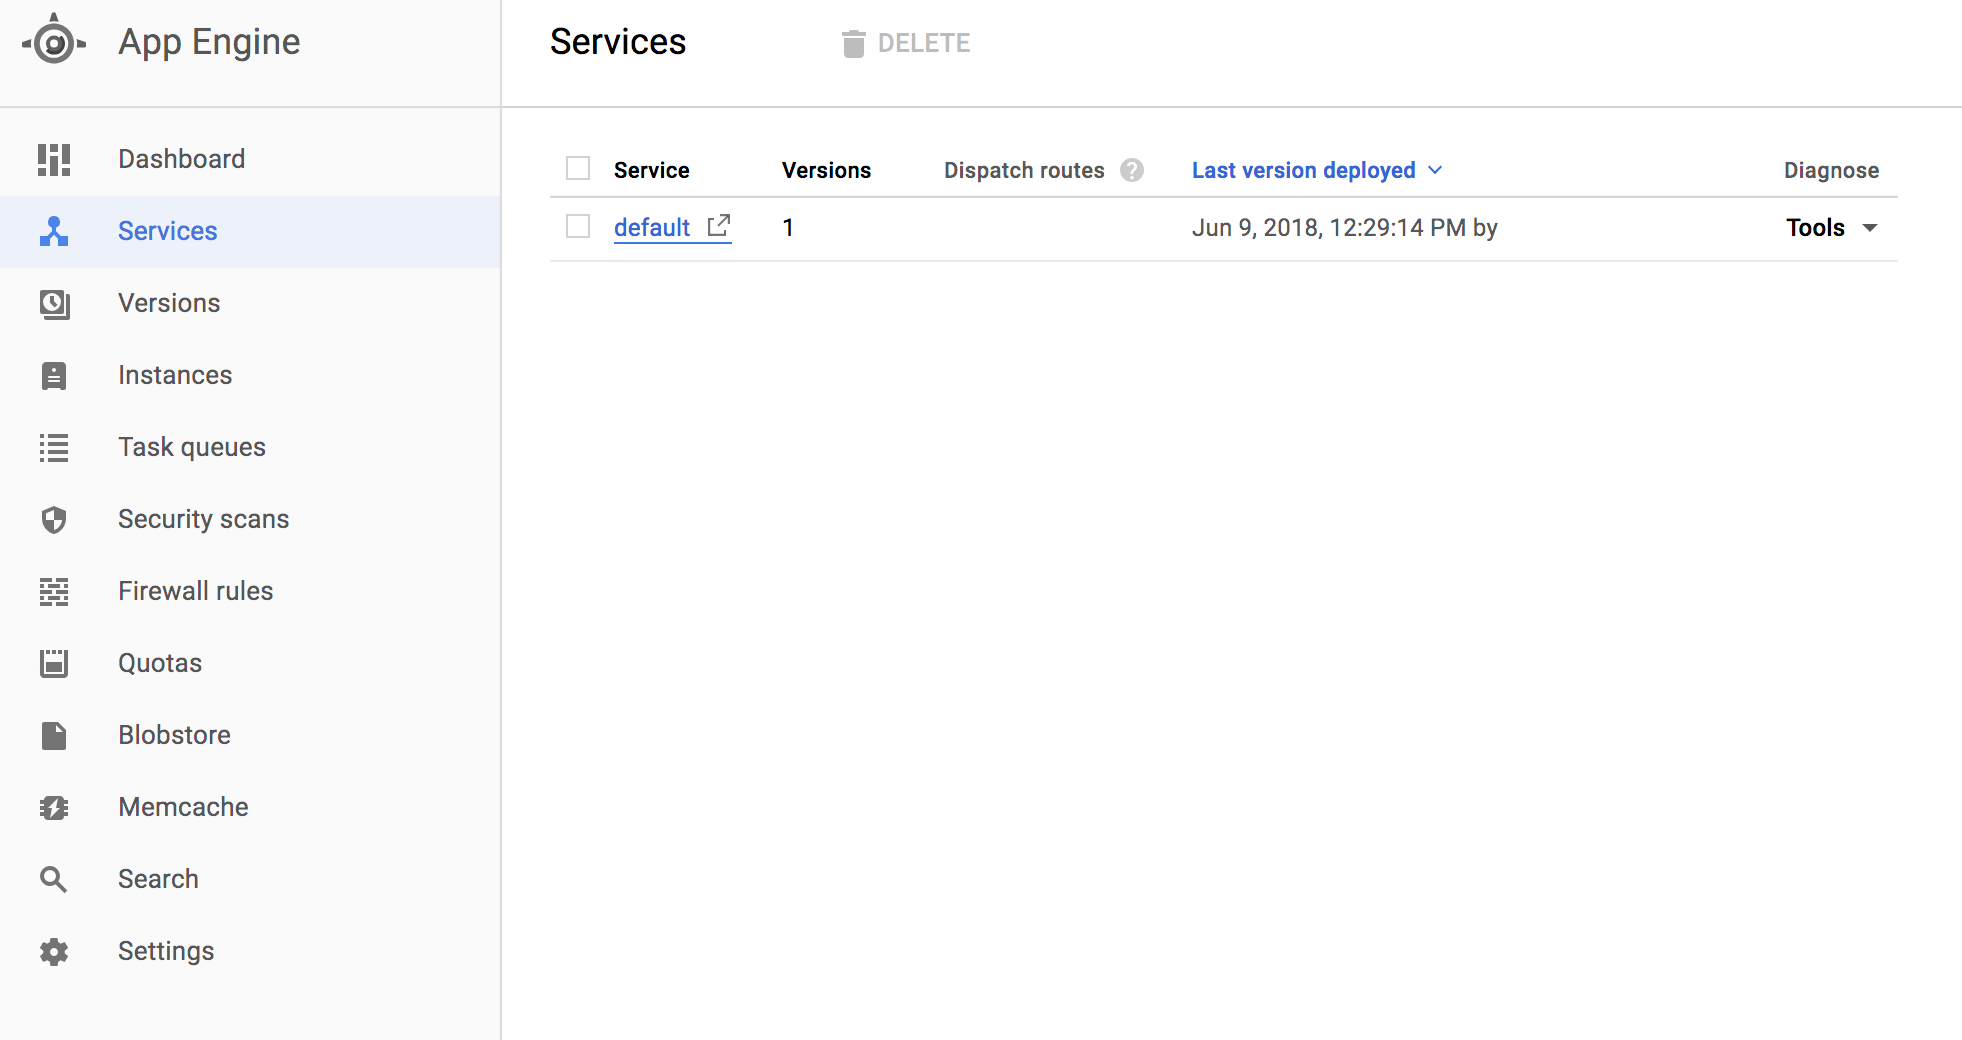 Google App Engine Services